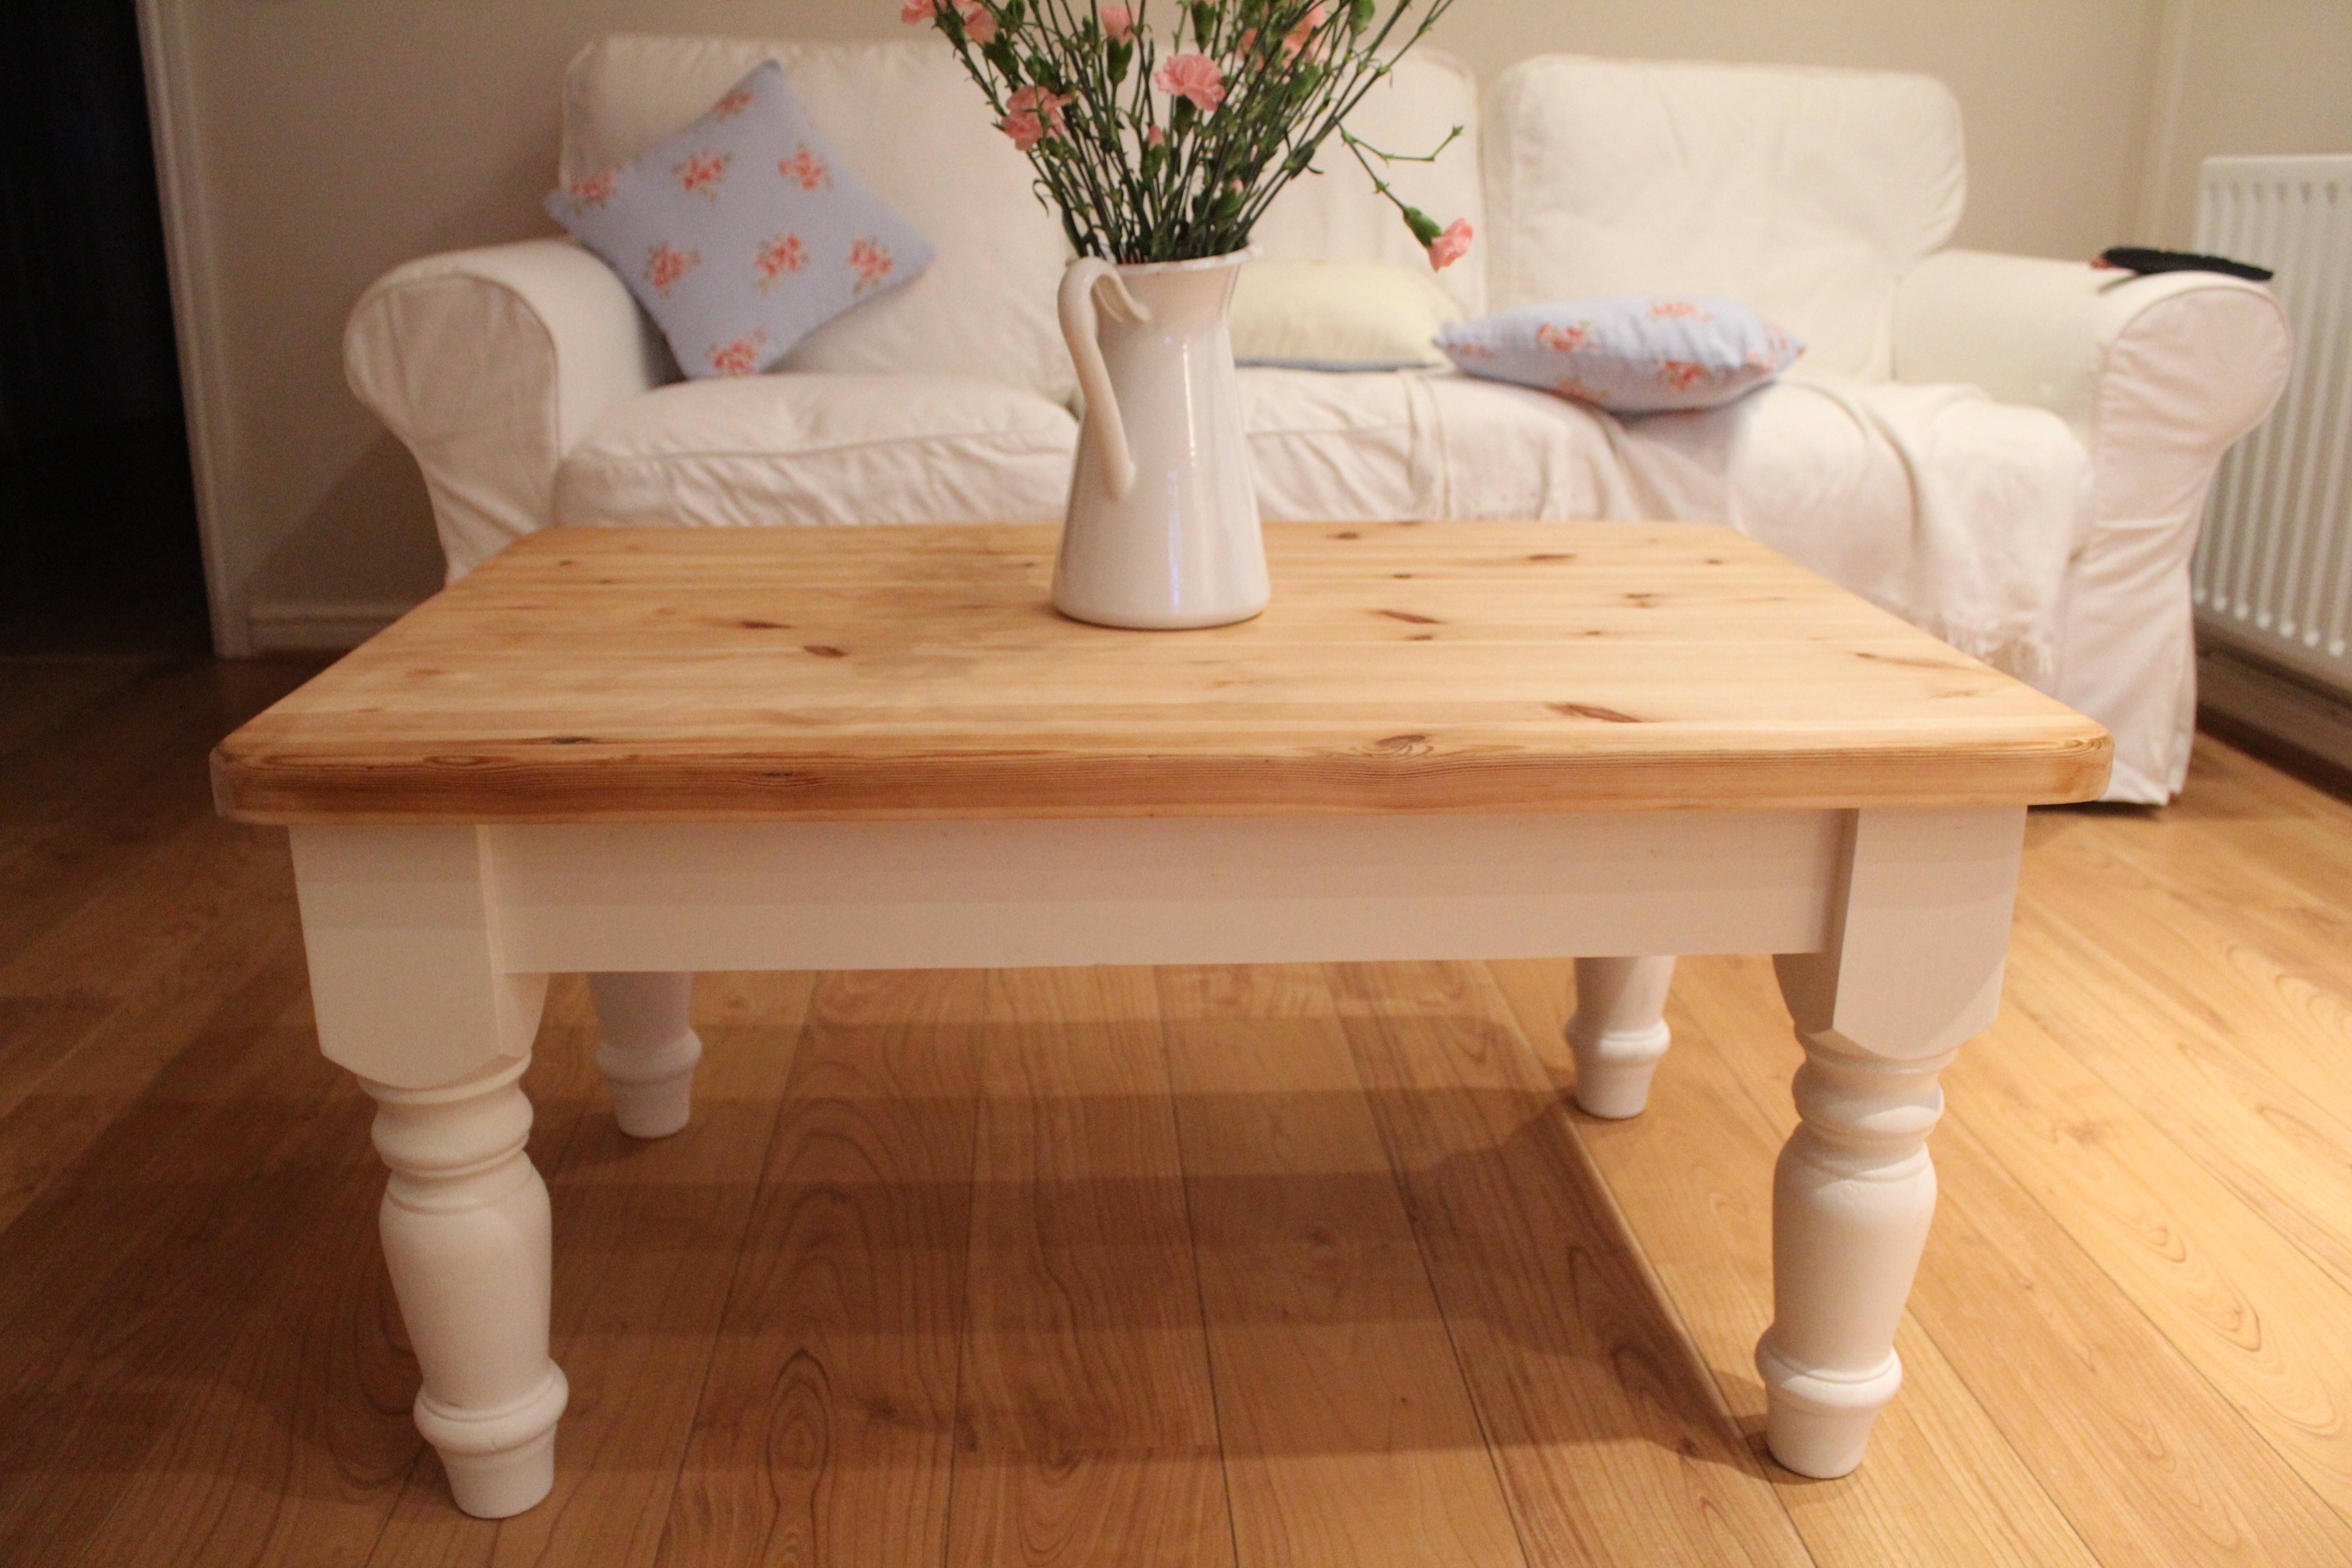 Round White Shabby Chic Coffee Table - Starrkingschool intended for Round Pine Coffee Tables (Image 27 of 30)